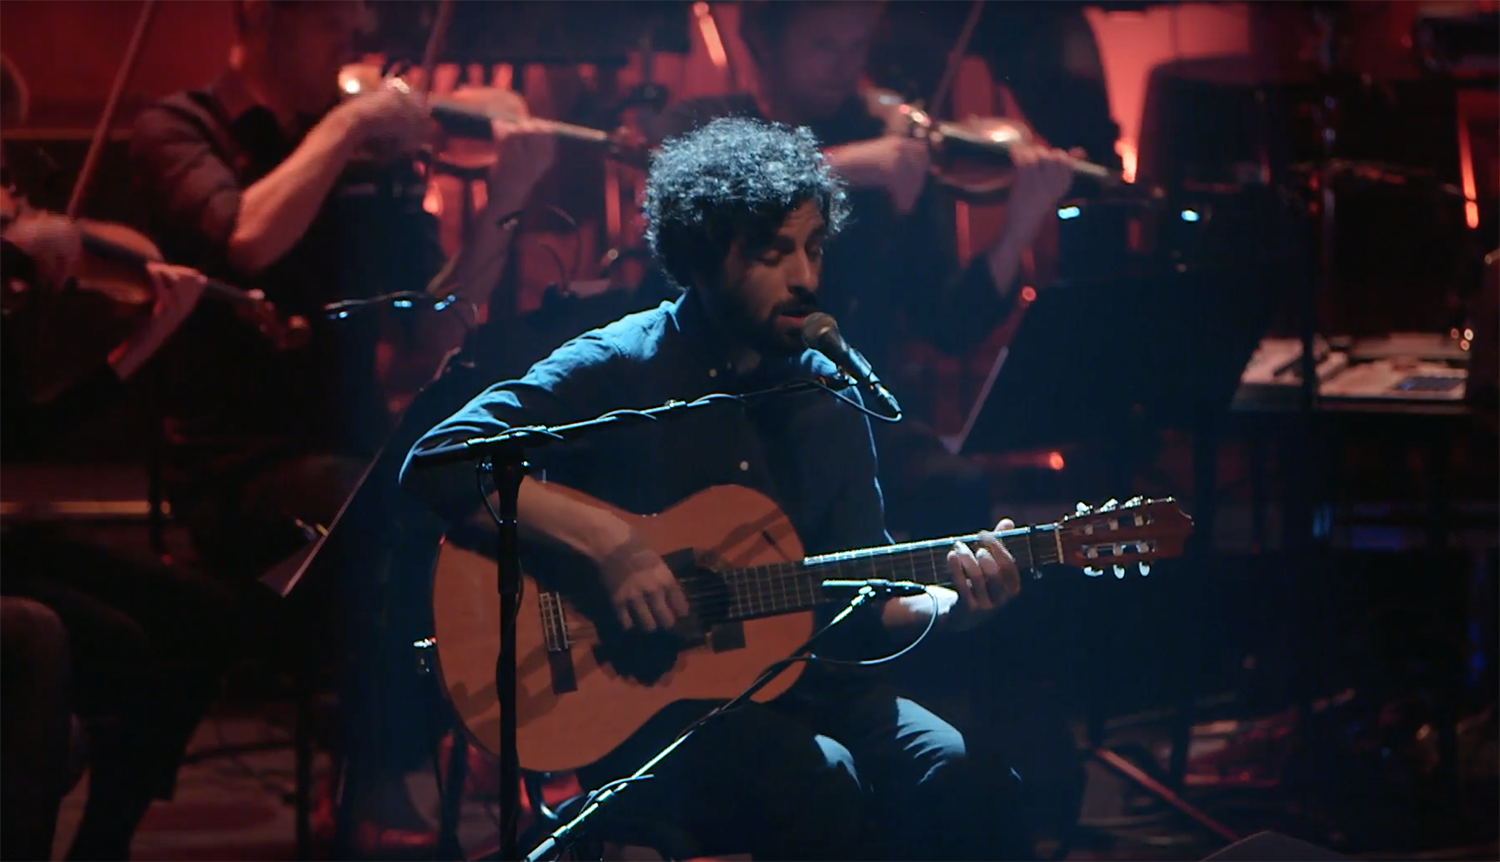 Watch José González + The String Theory's concert at the Royal Festival Hall!